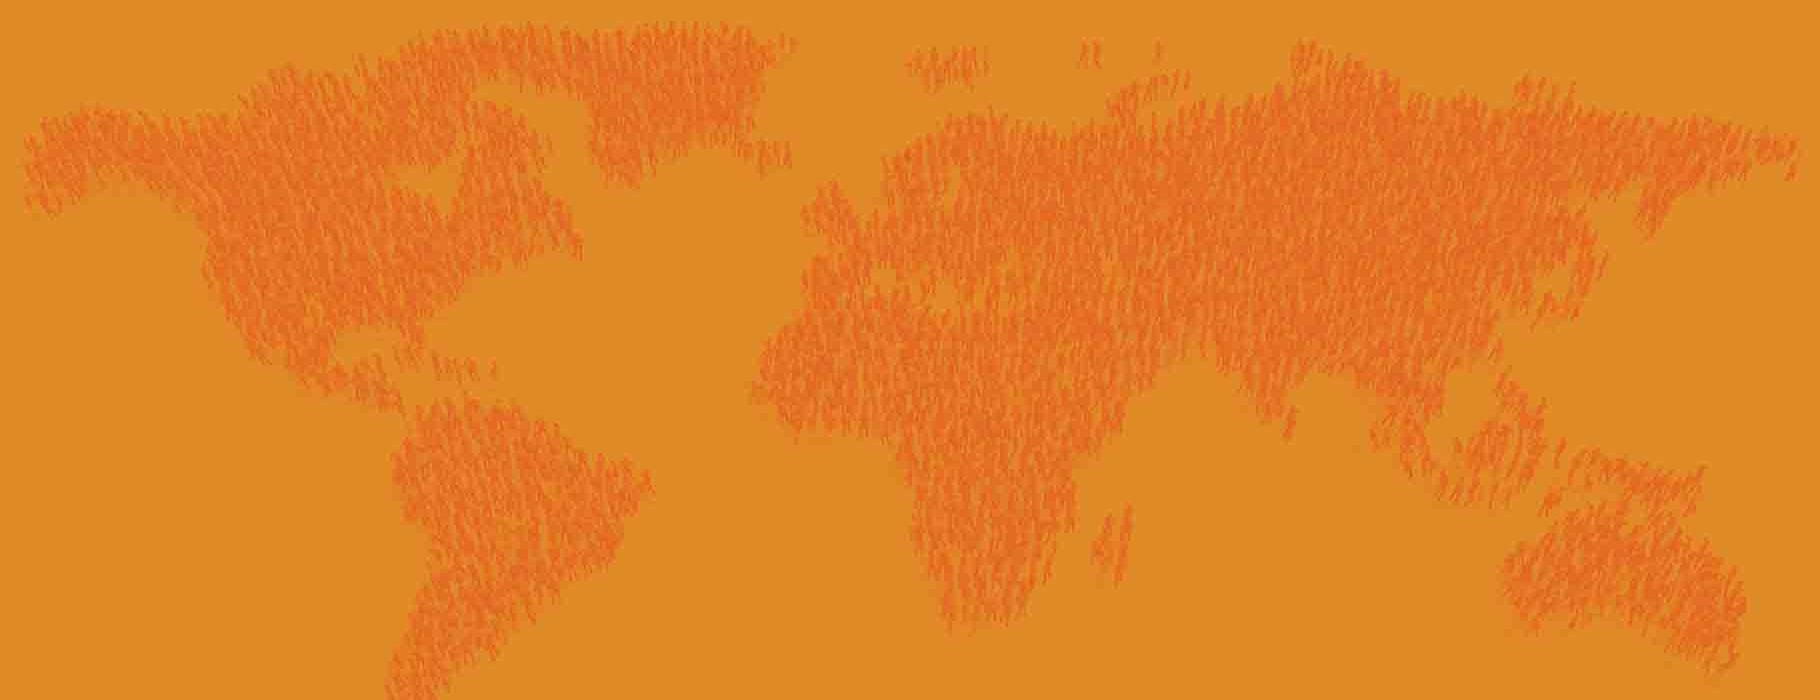 Illustration of people standing in the pattern of a world map